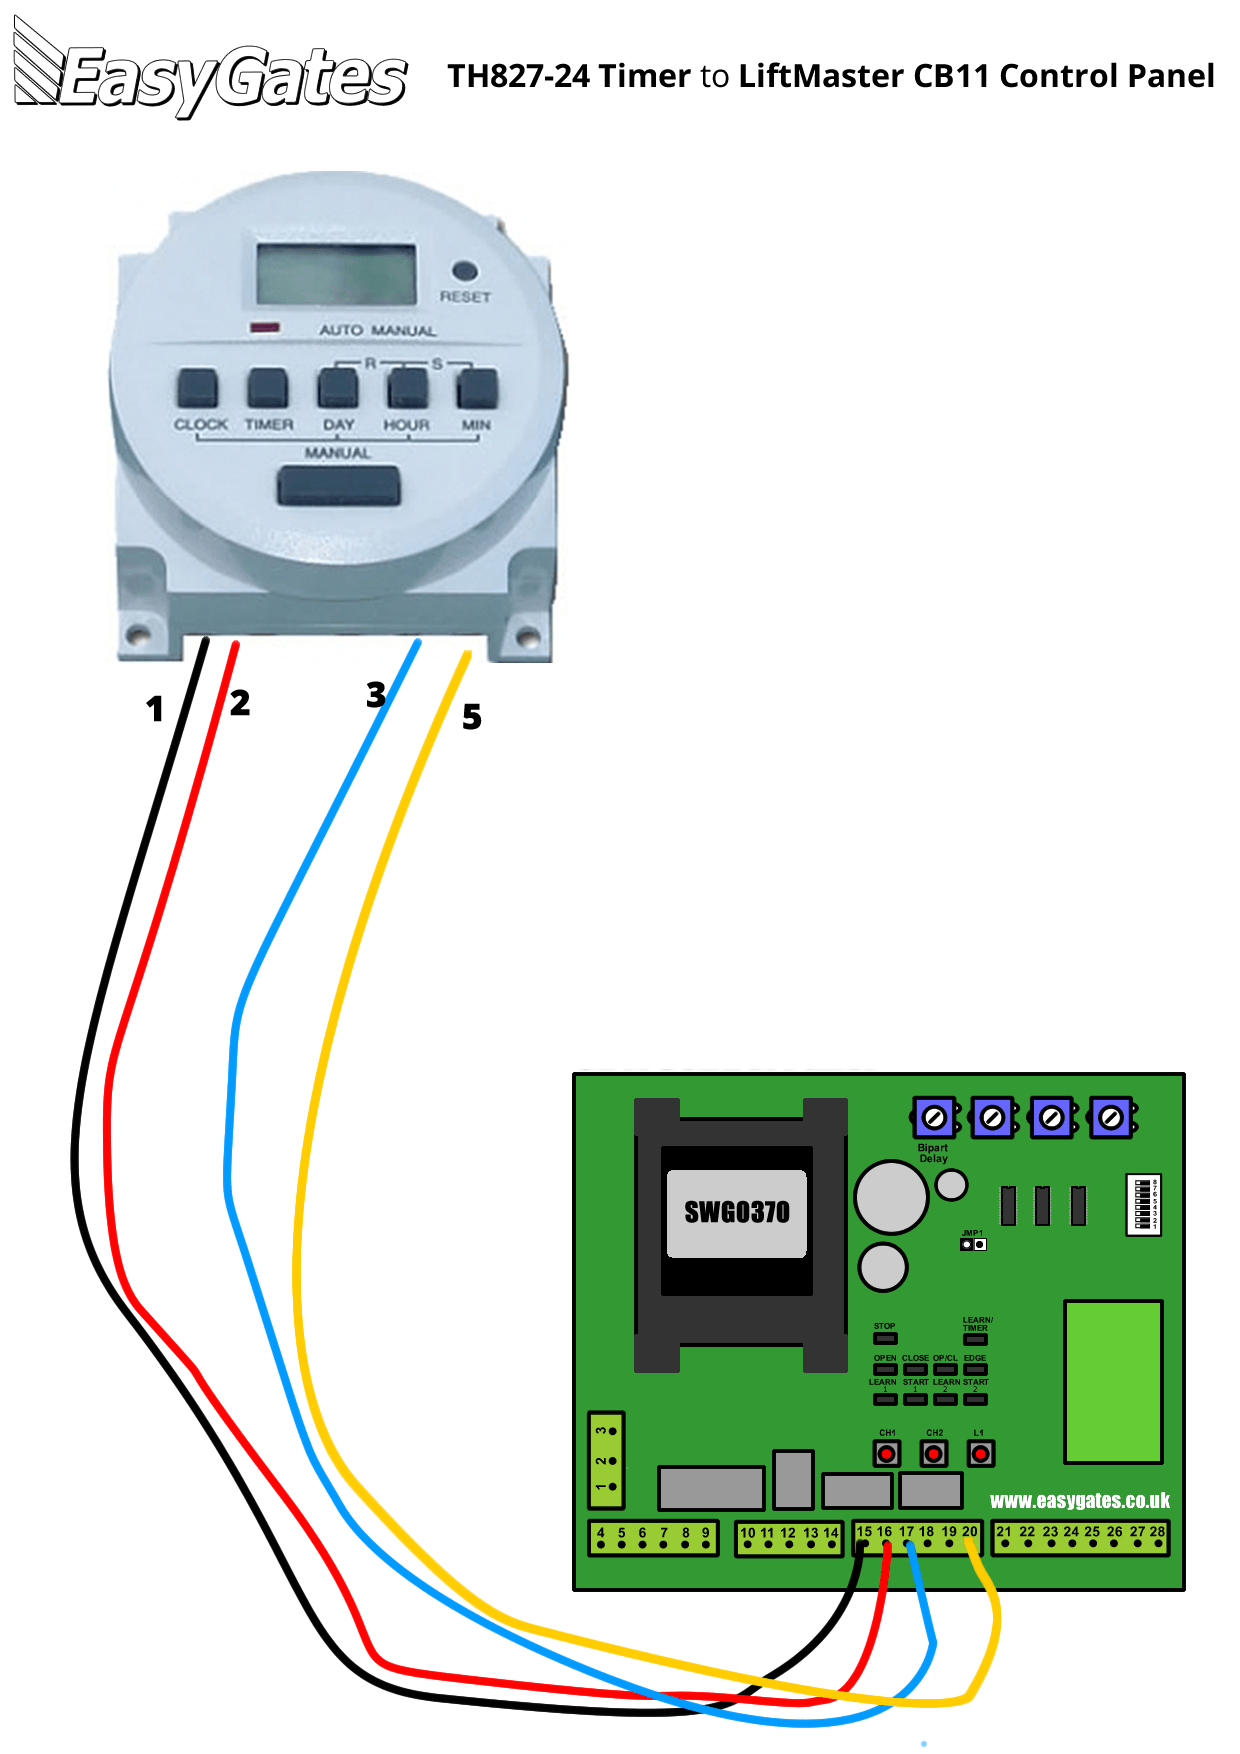 Wiring Diagram For Connecting Th827-24 Timer To Liftmaster Cb11